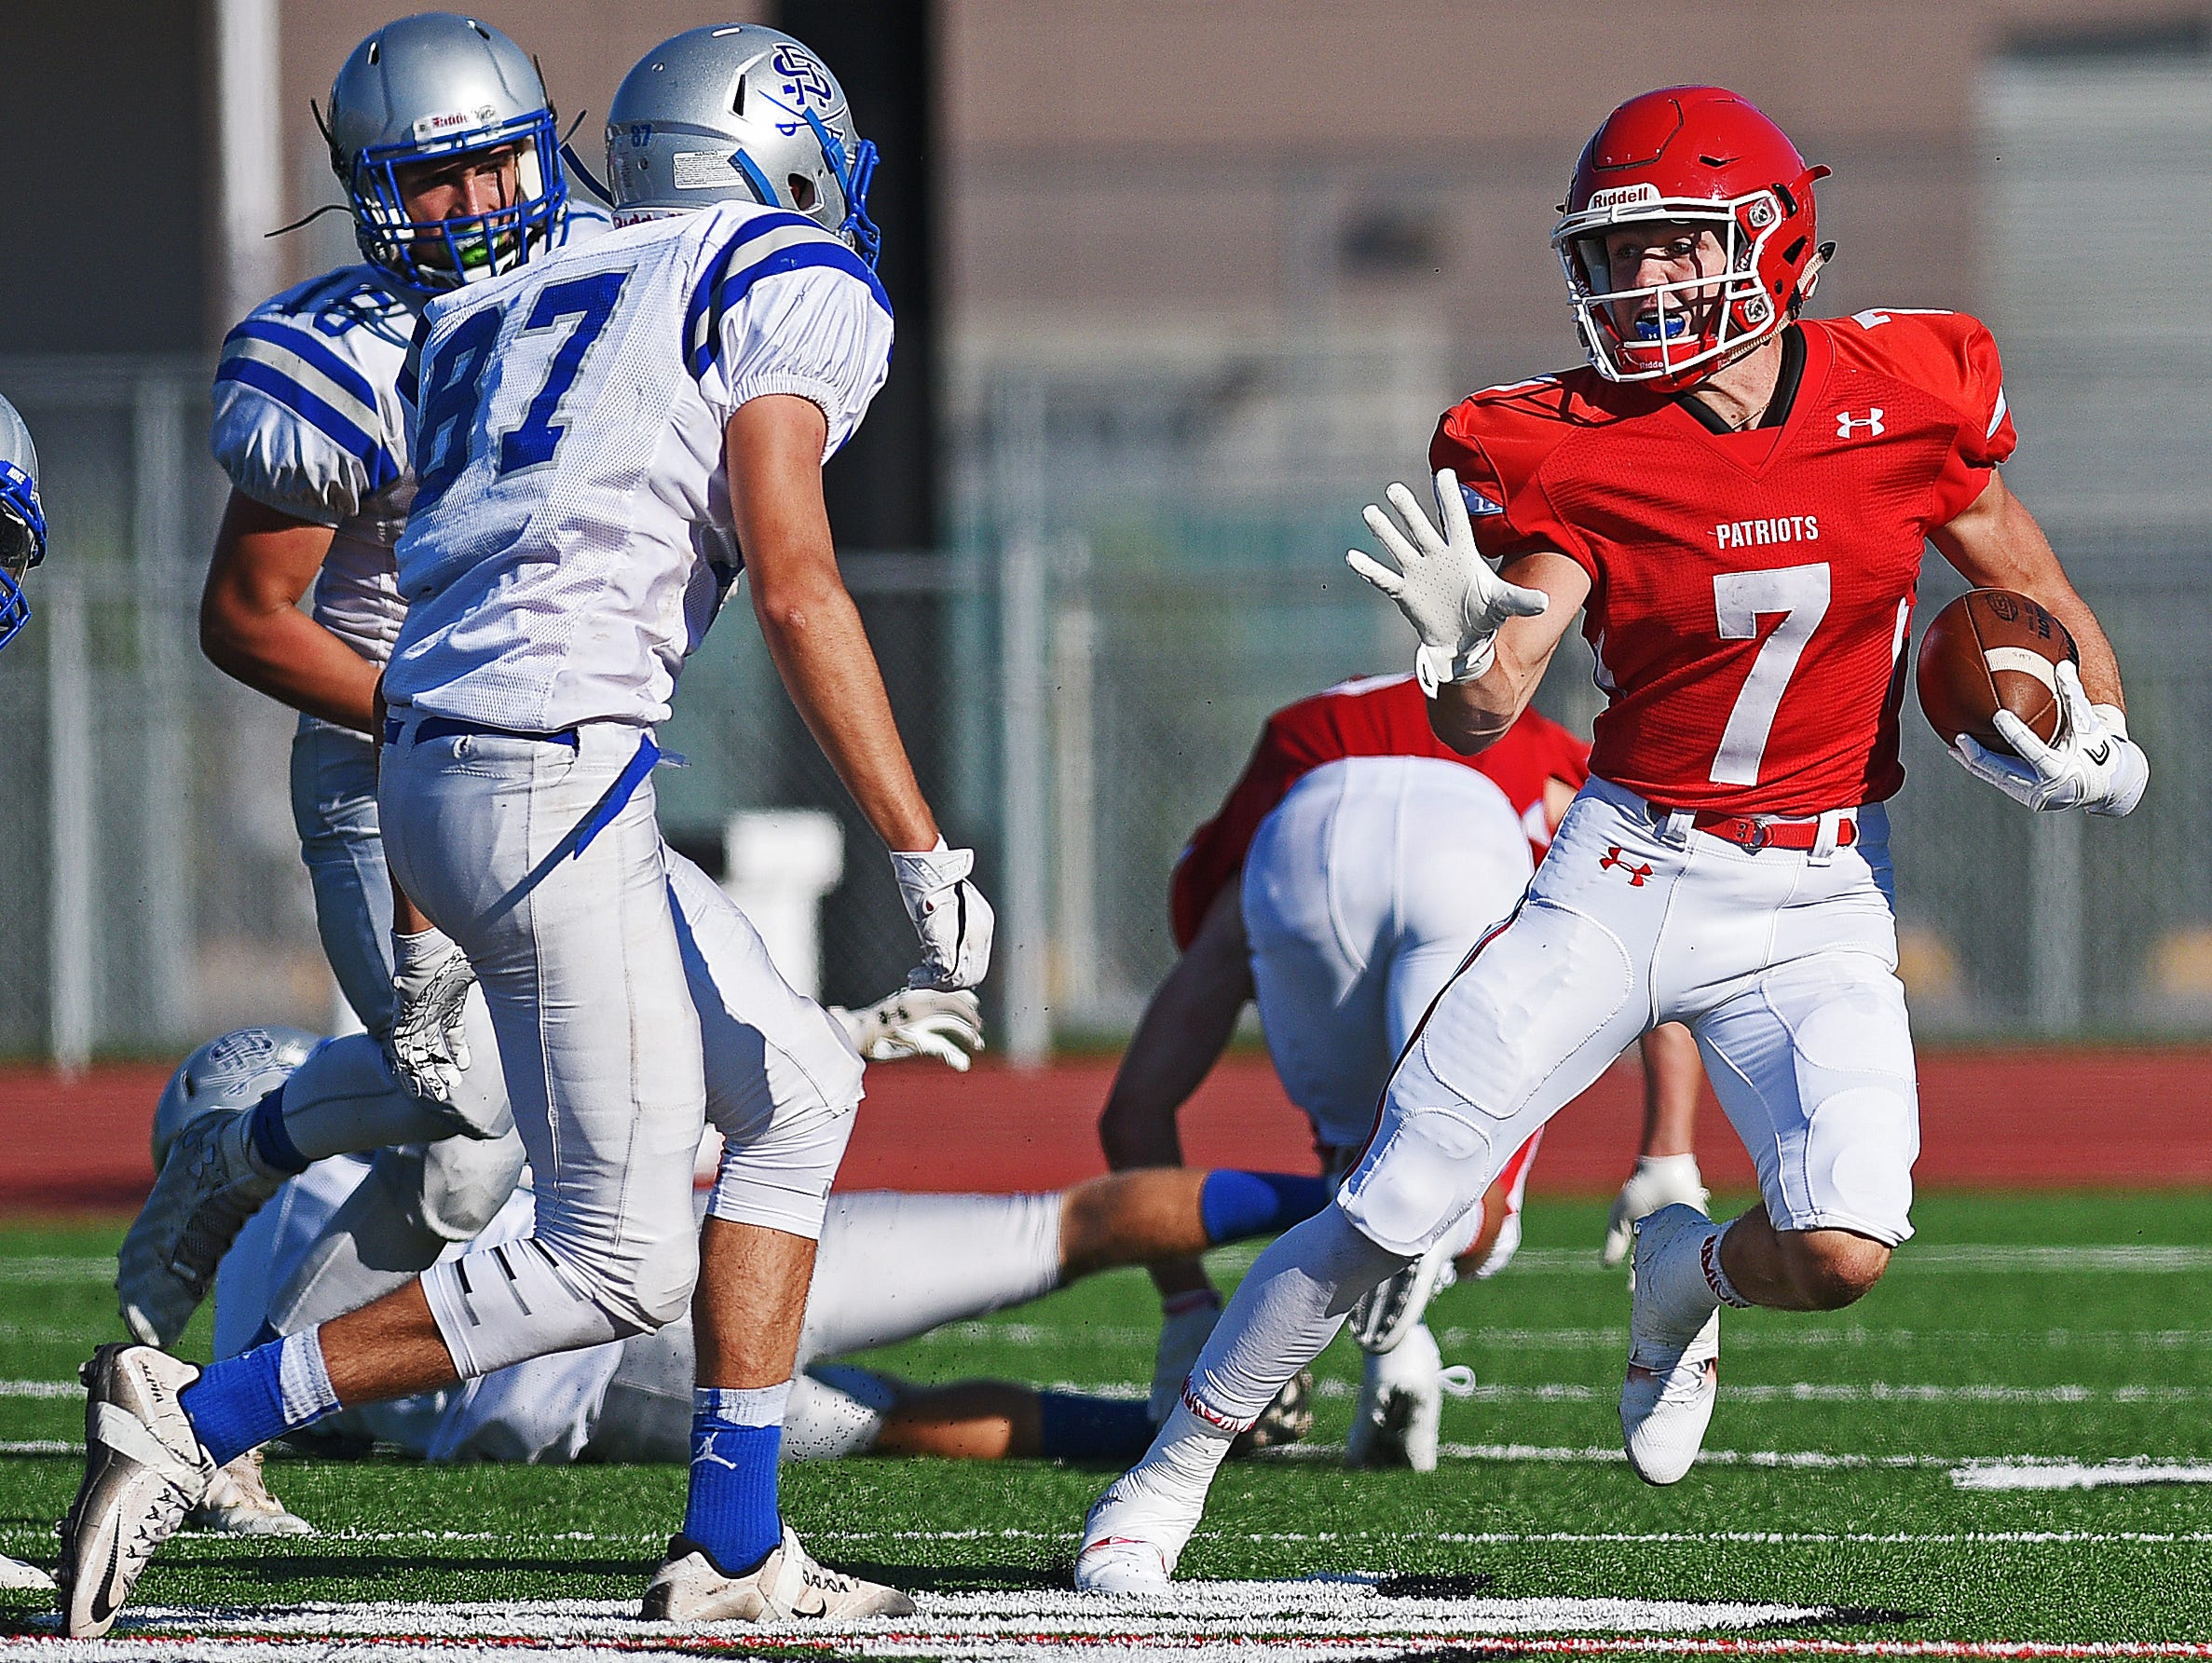 Lincoln's Cole DeBerg (7) rushes with the ball during a game against Rapid City Stevens Saturday, Aug. 27, 2016, at Howard Wood Field in Sioux Falls.